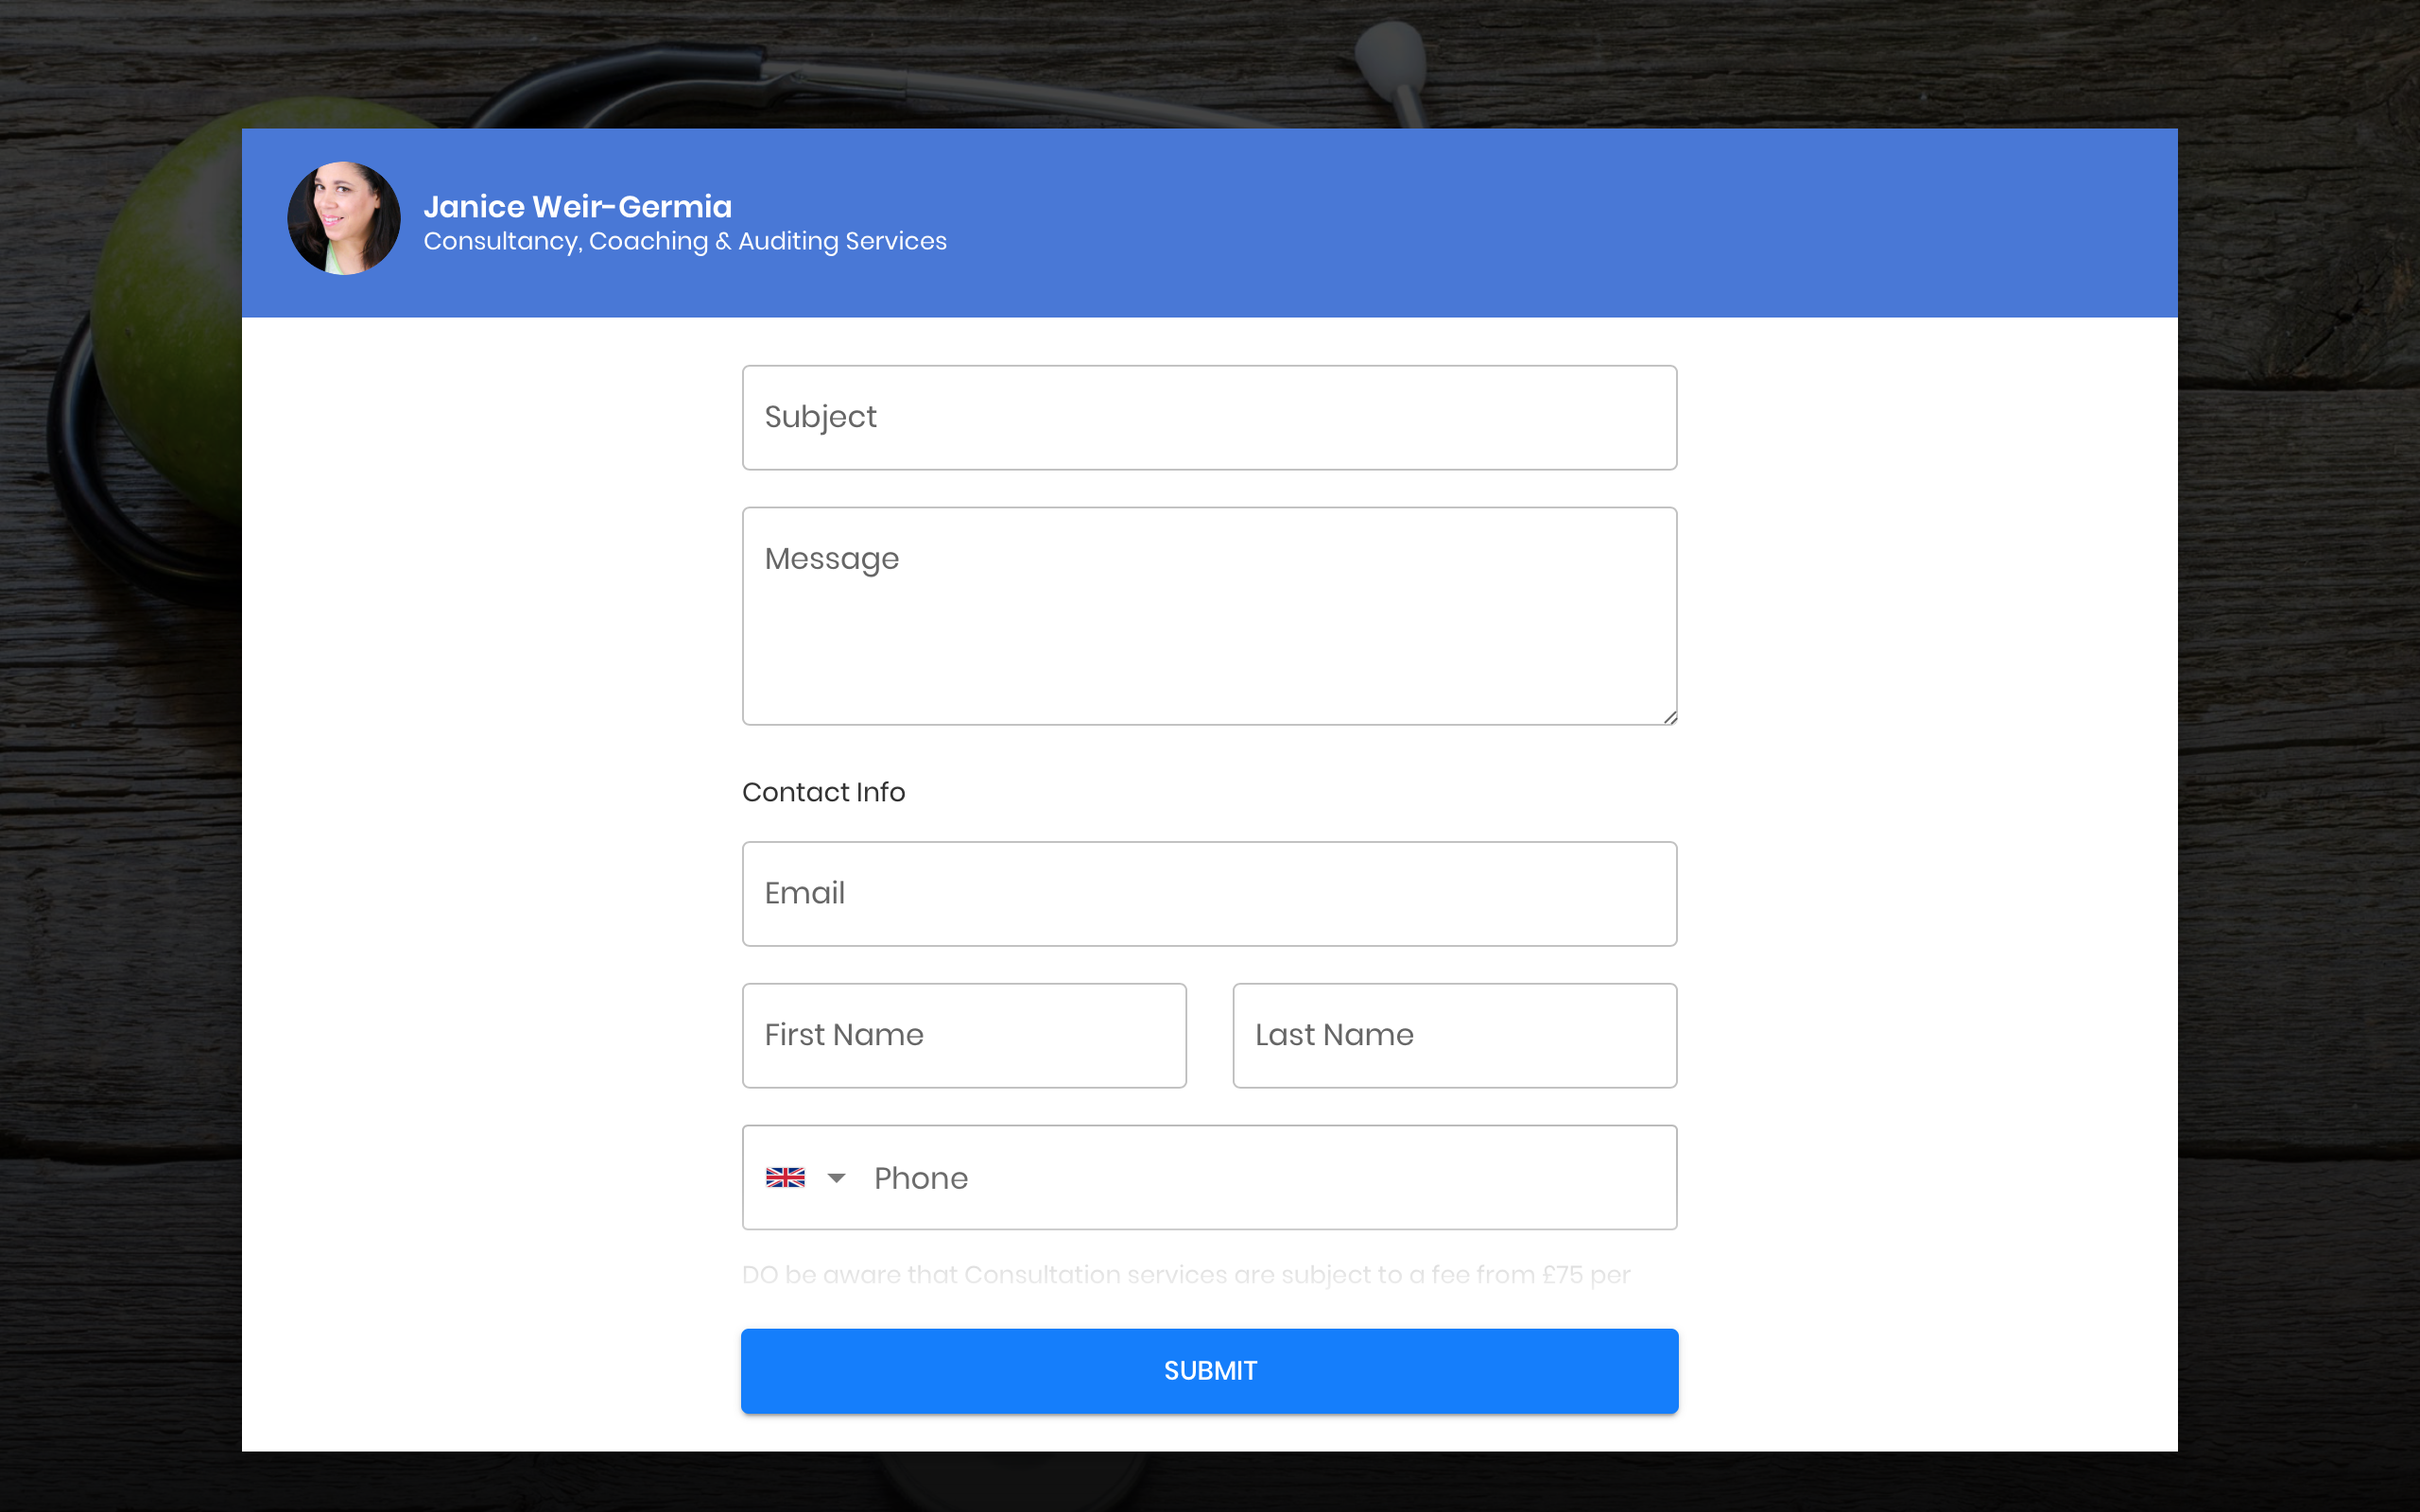 Modal button takes user to an external site takes you to a form